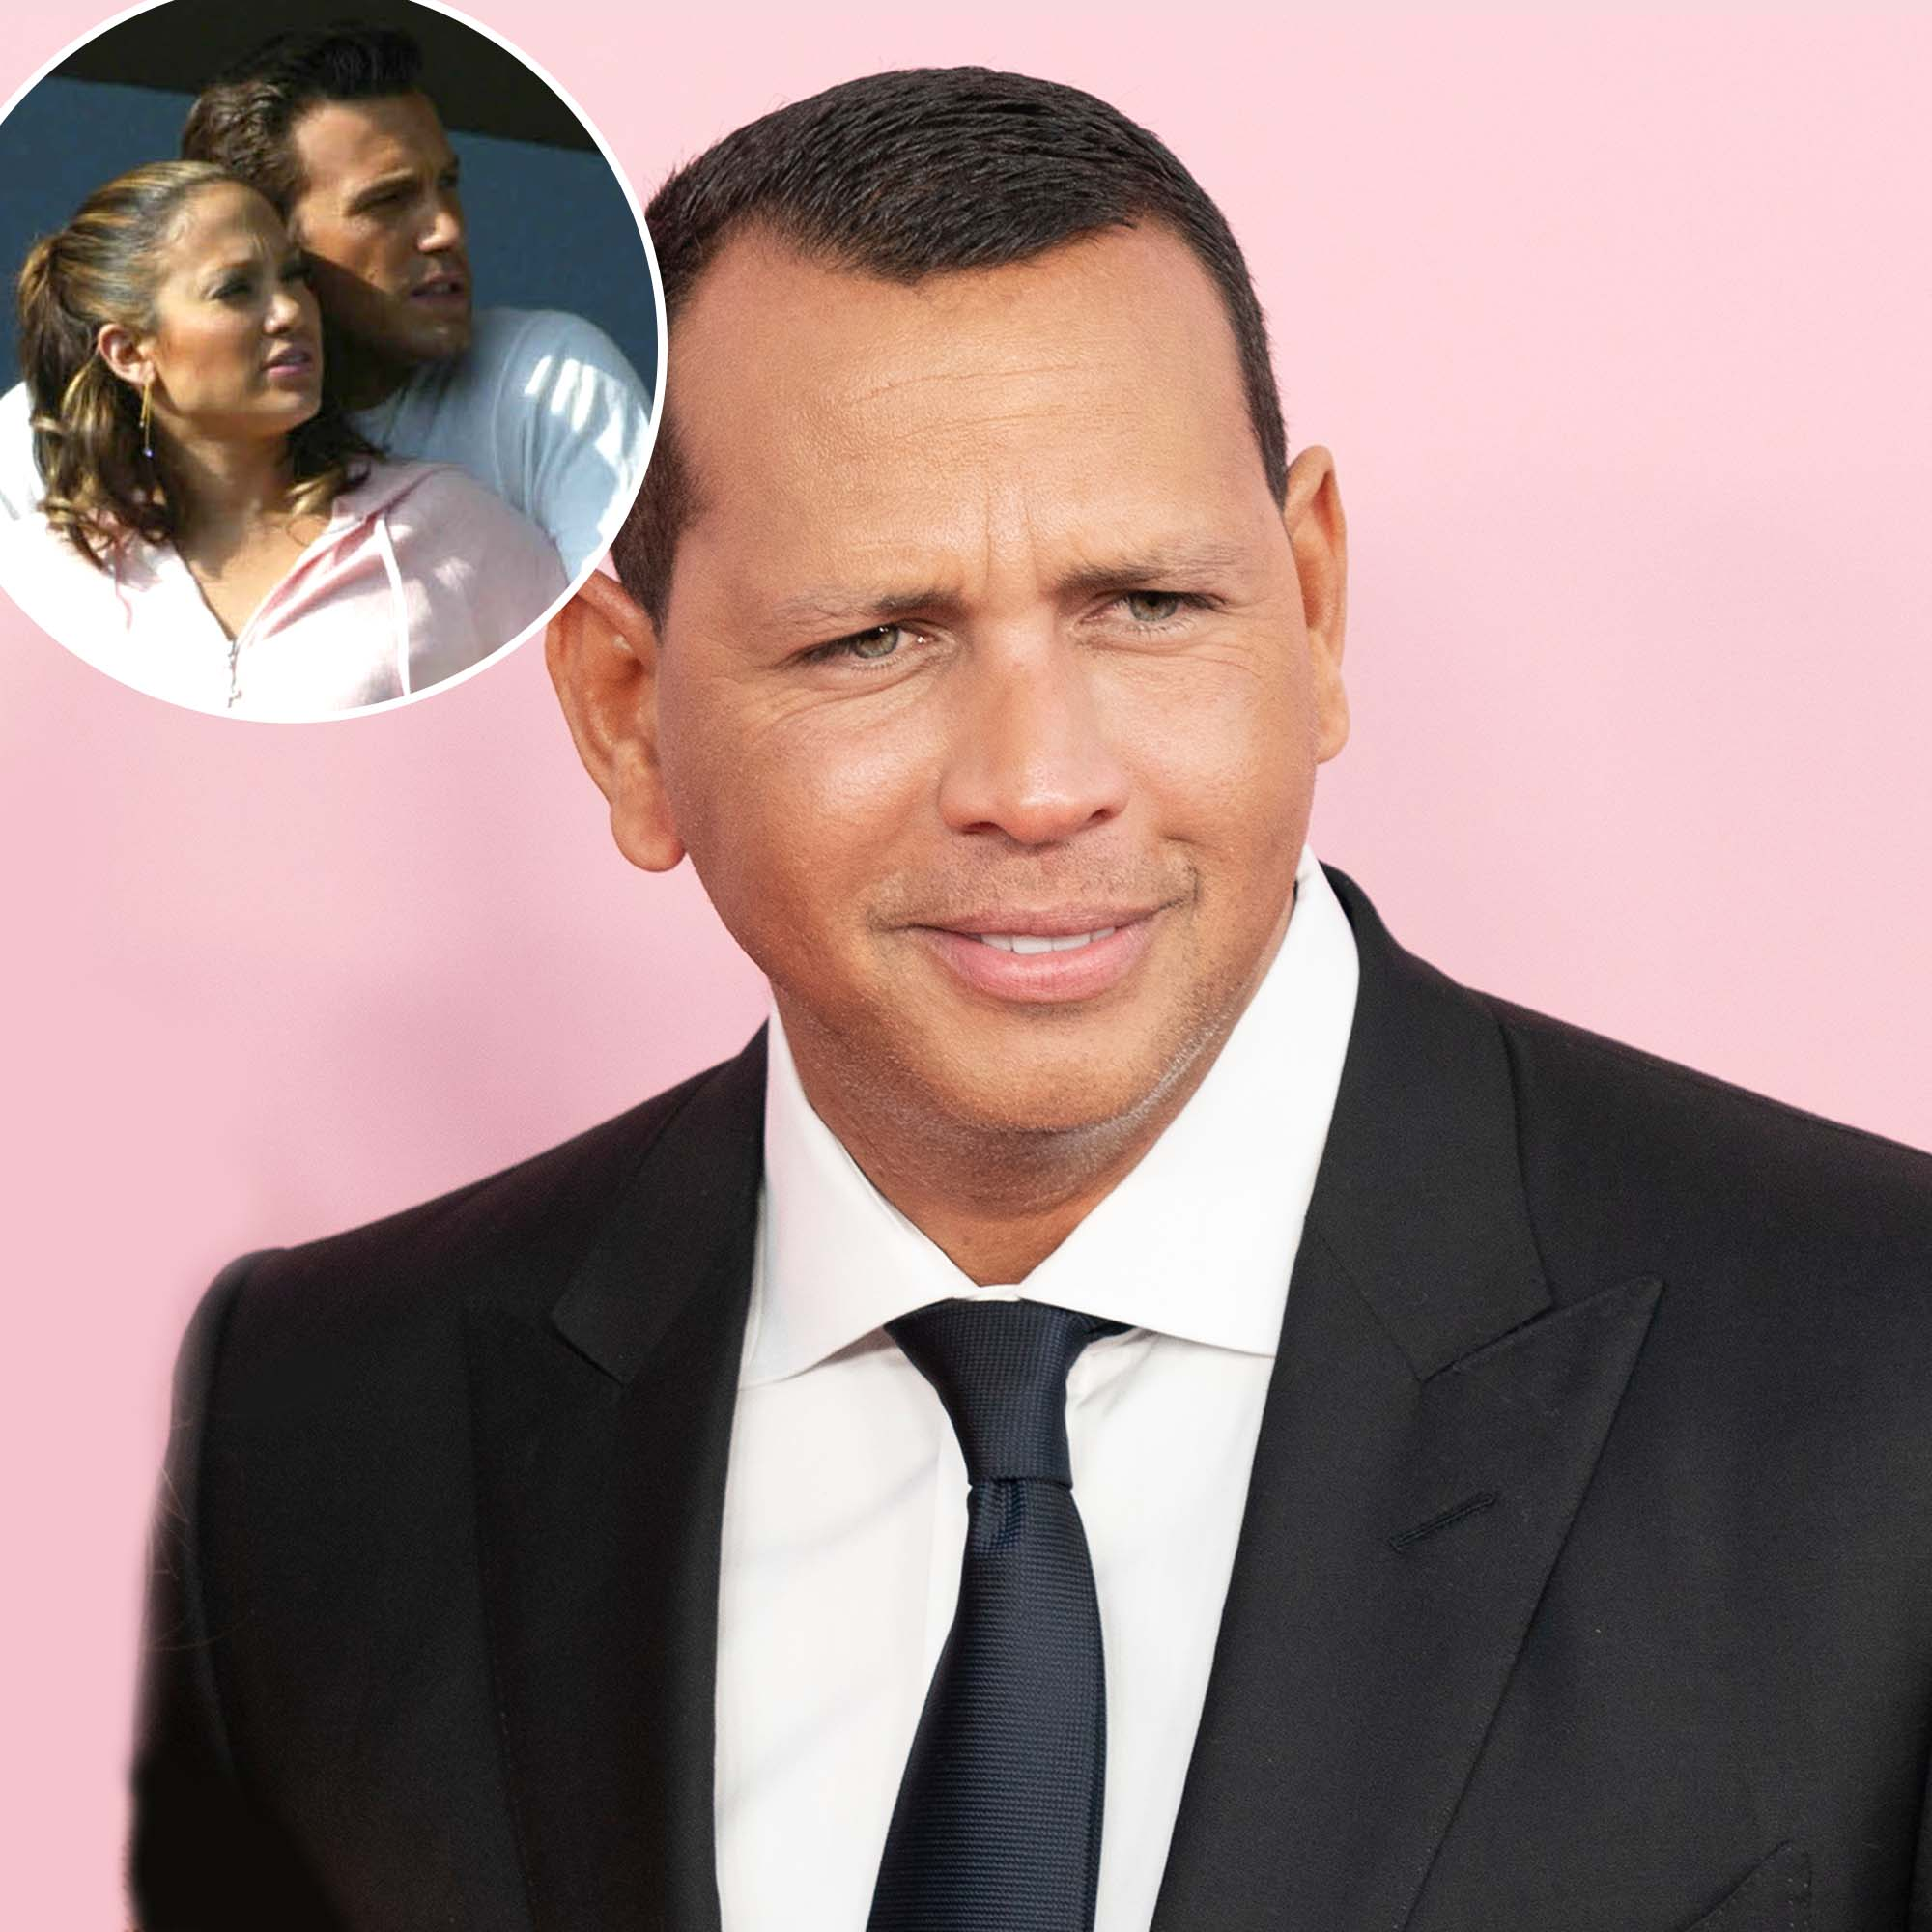 Exclusive-A-Rod -Furious-Ben-Affleck-Was-Emailing-J-Lo-February-Thinks-He-Overstepped-001